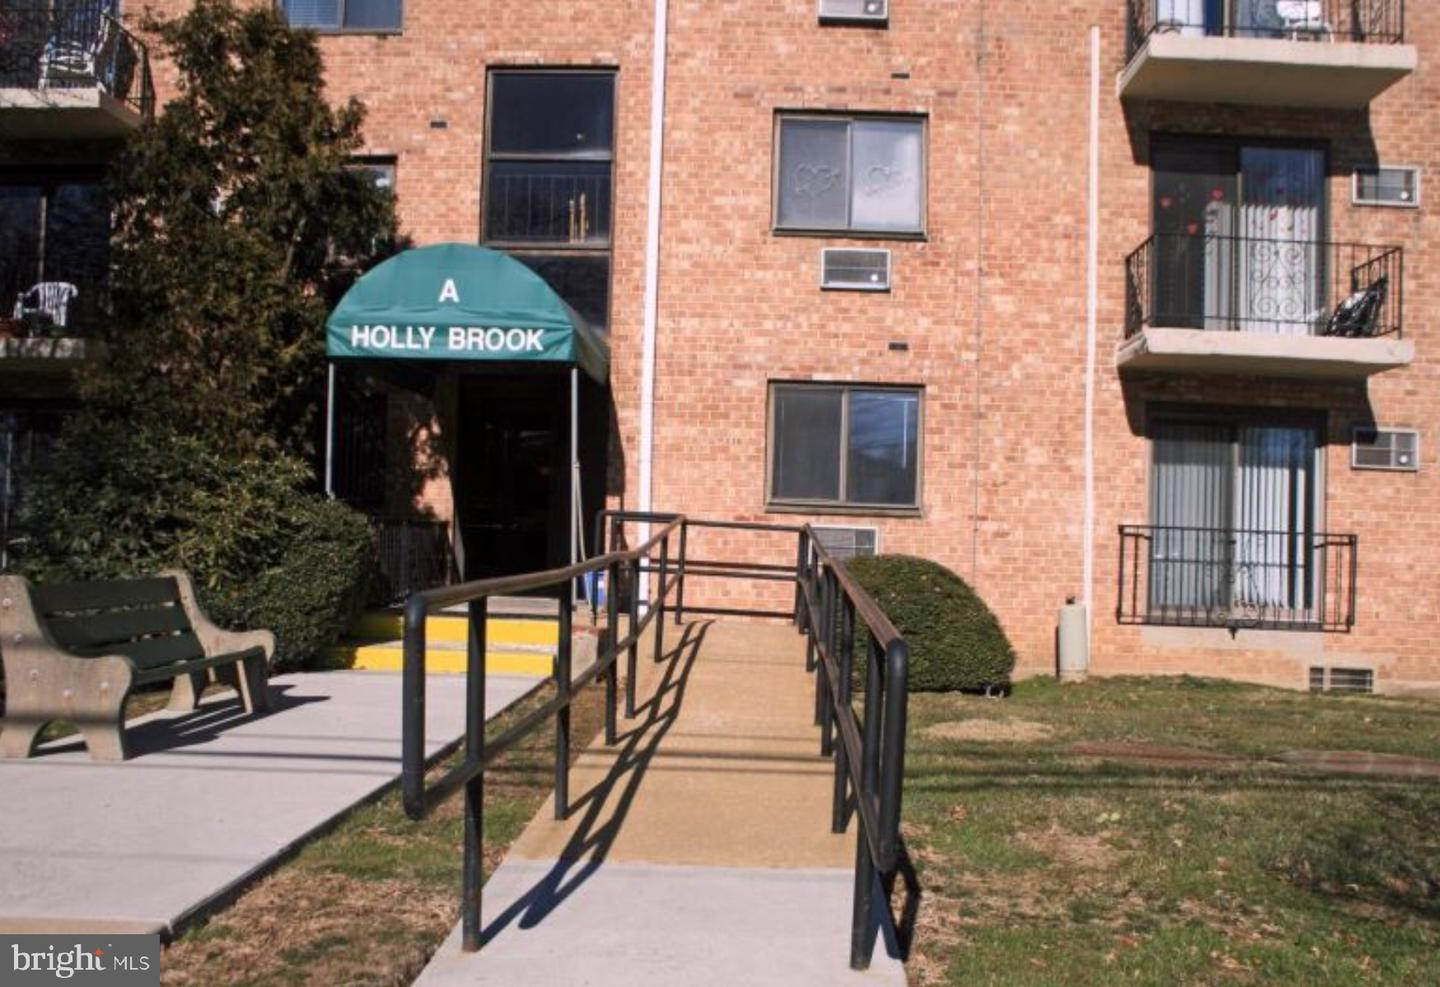 3421 West Chester Pike Newtown Square, PA 19073